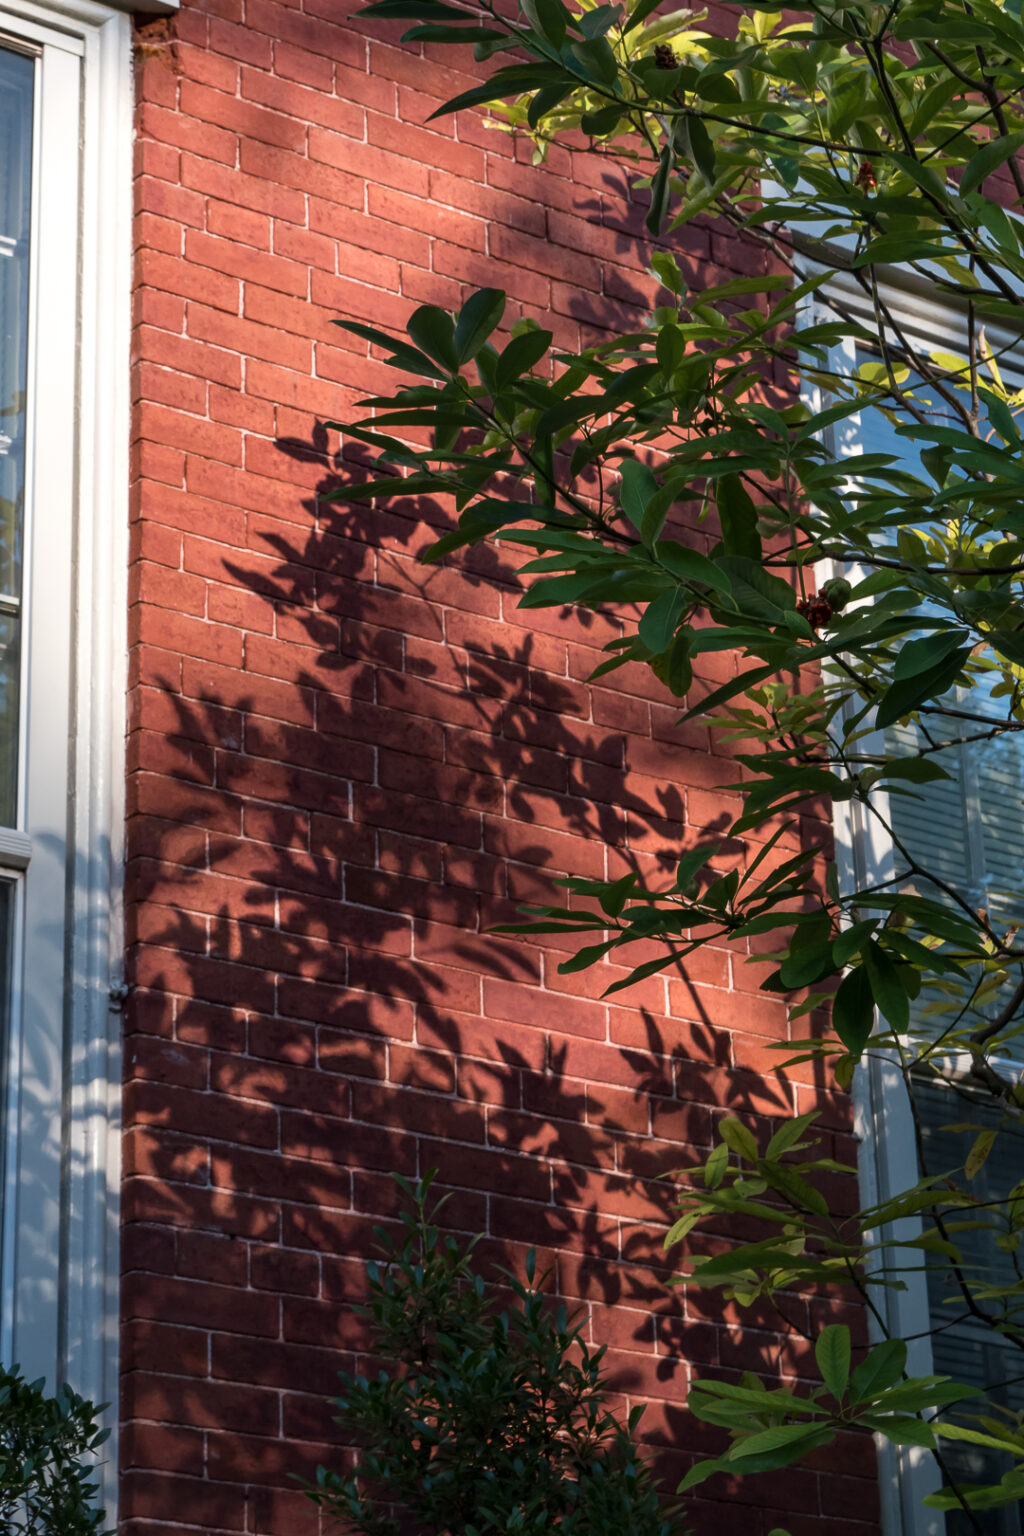 Plant shadows on a house